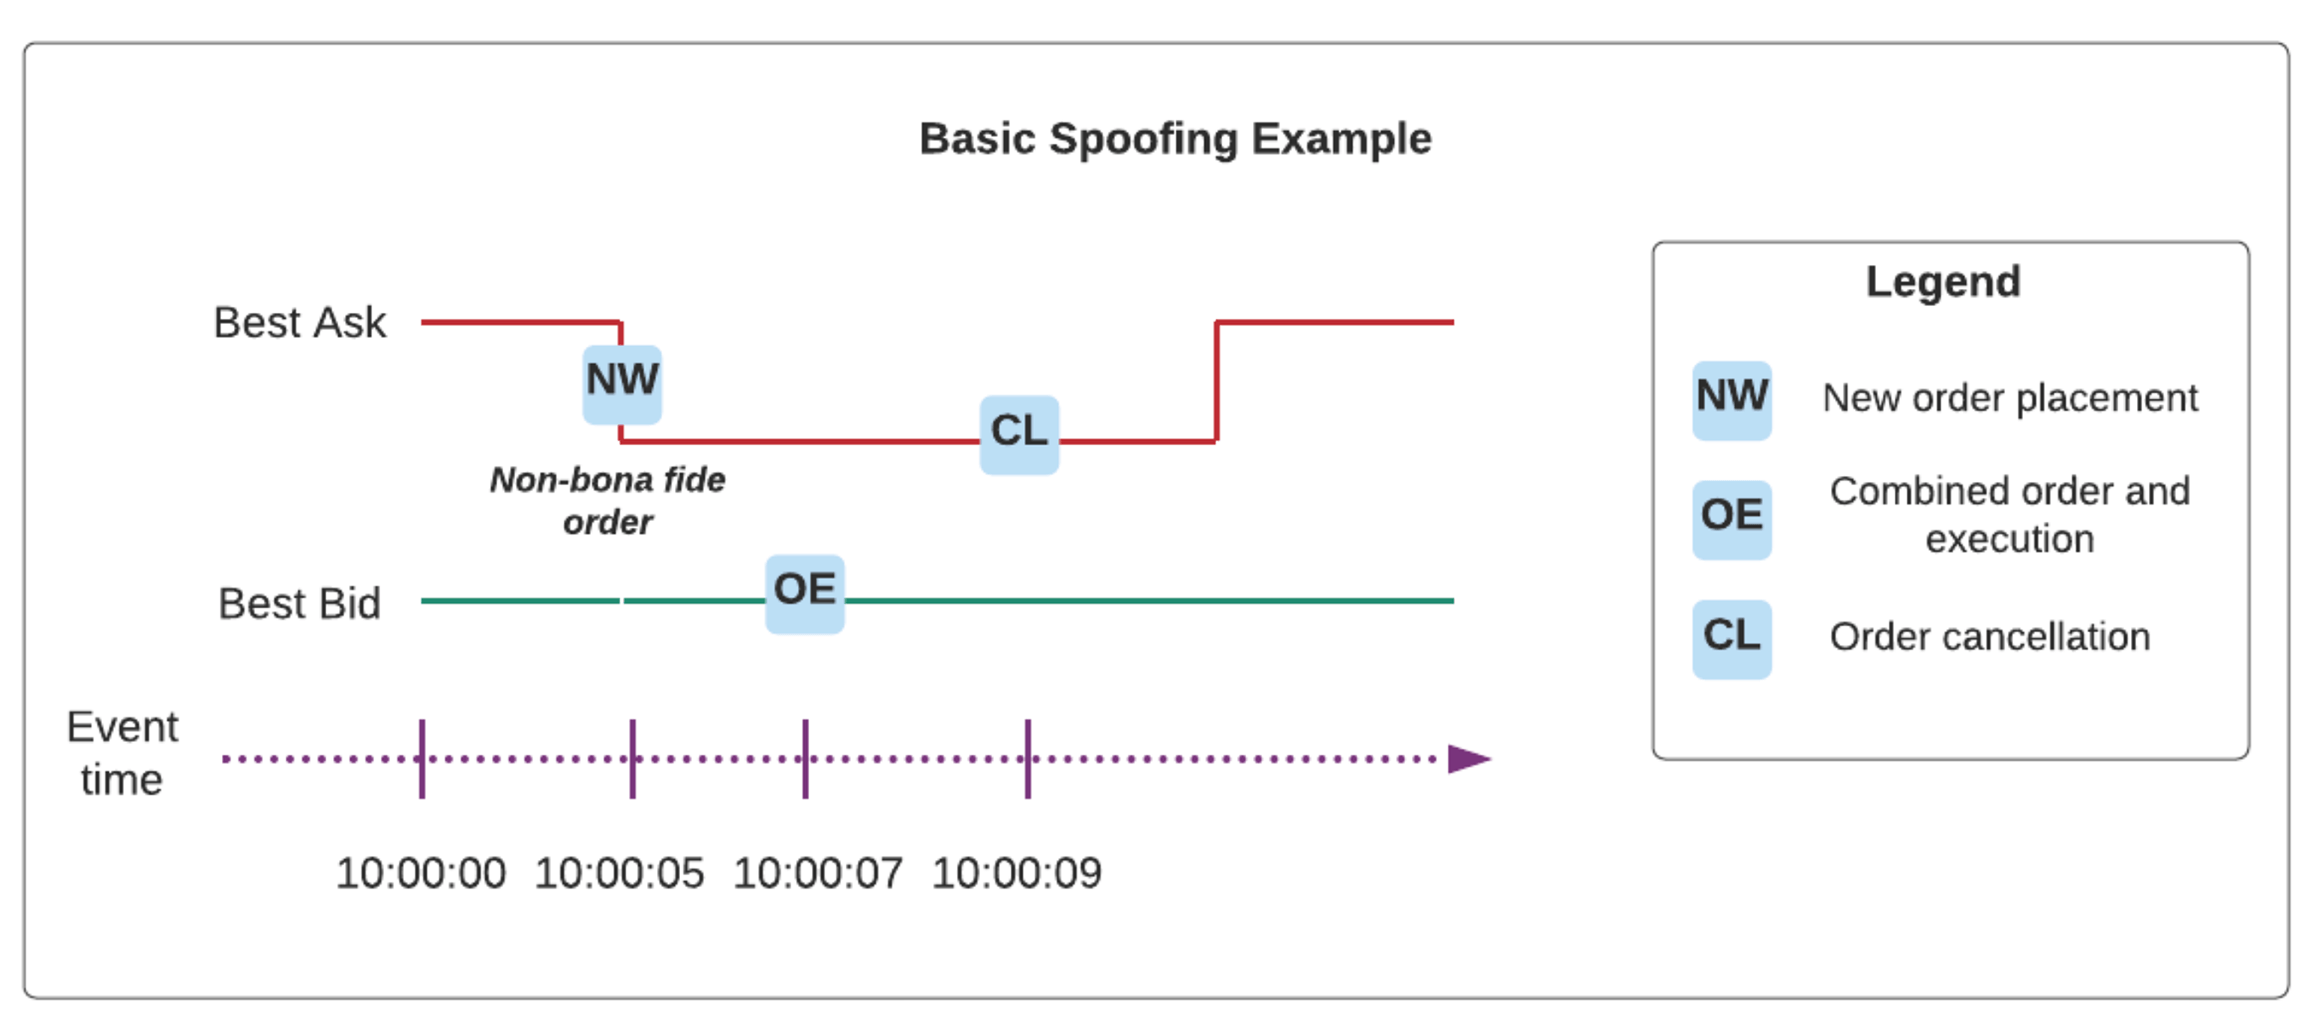 Basic spoofing example